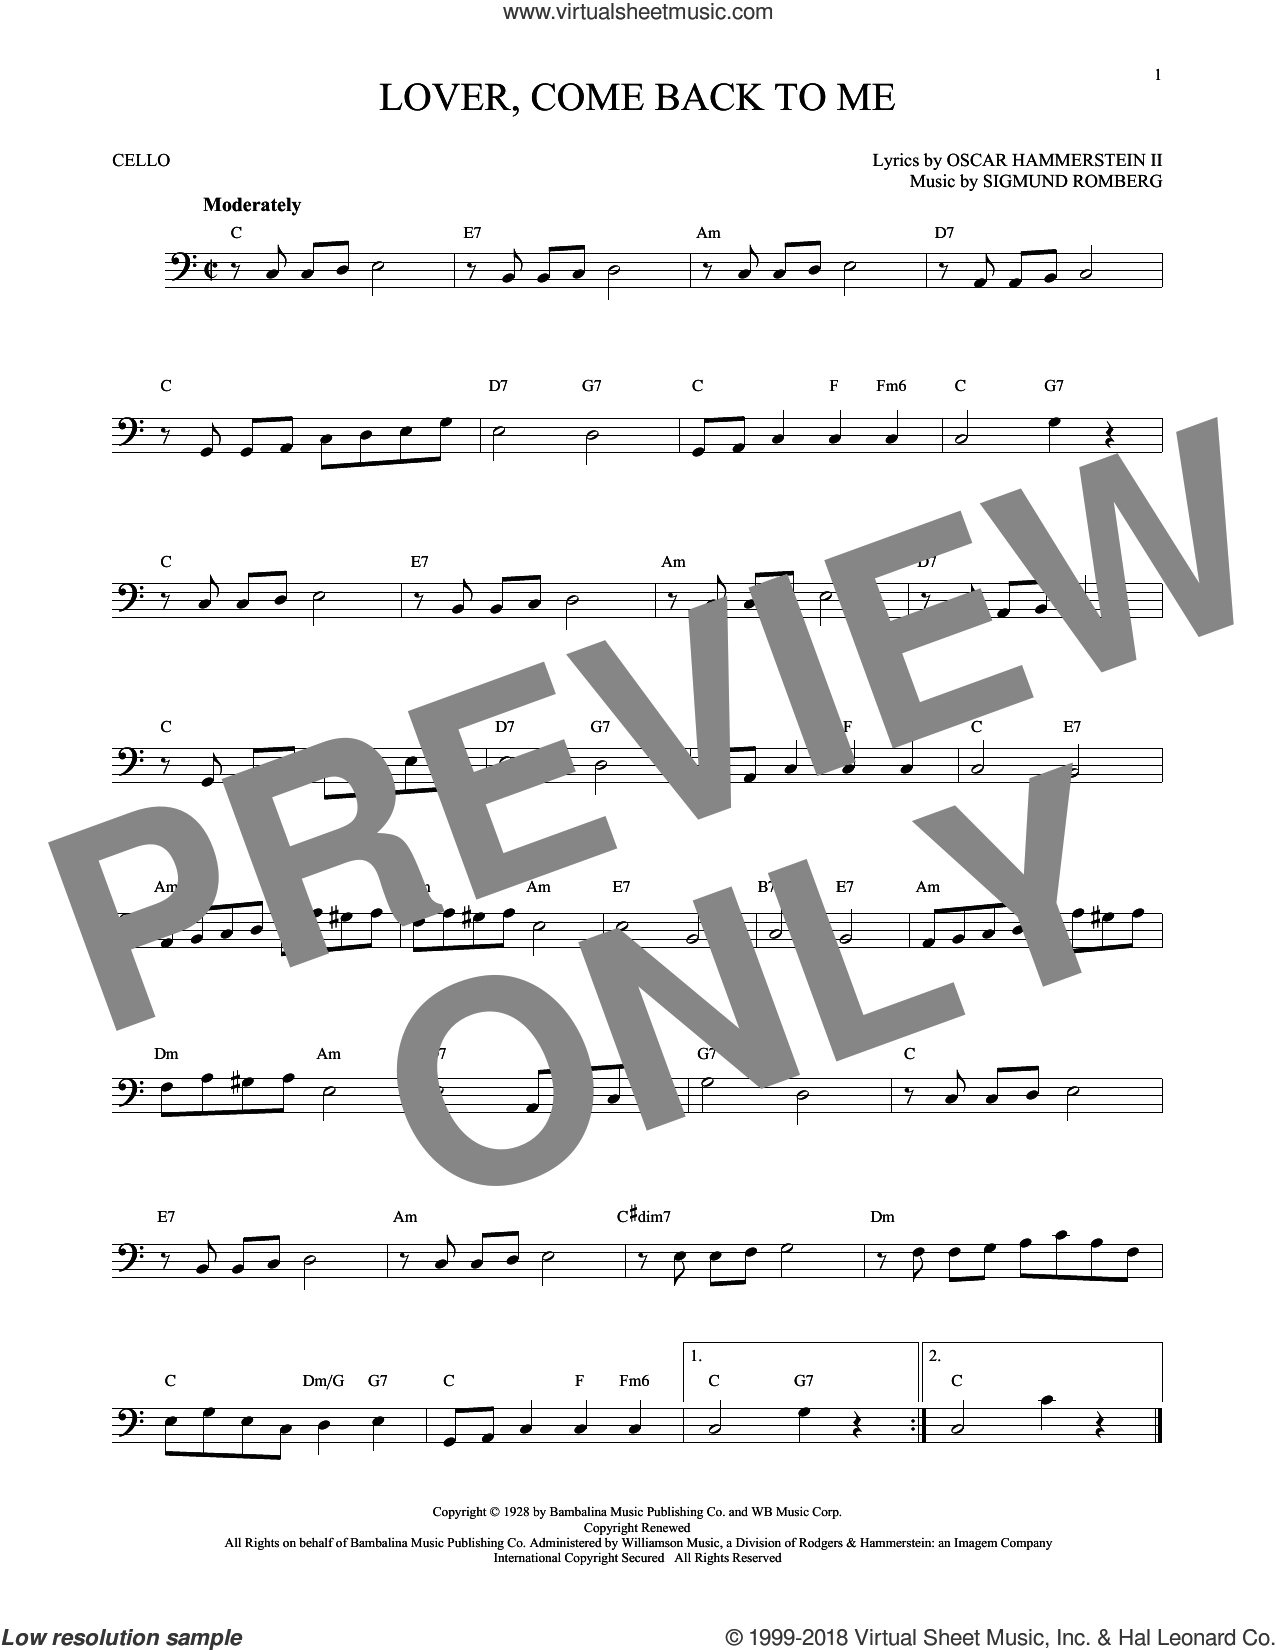 Lover, Come Back To Me sheet music for cello solo by Oscar II Hammerstein and Sigmund Romberg, intermediate skill level